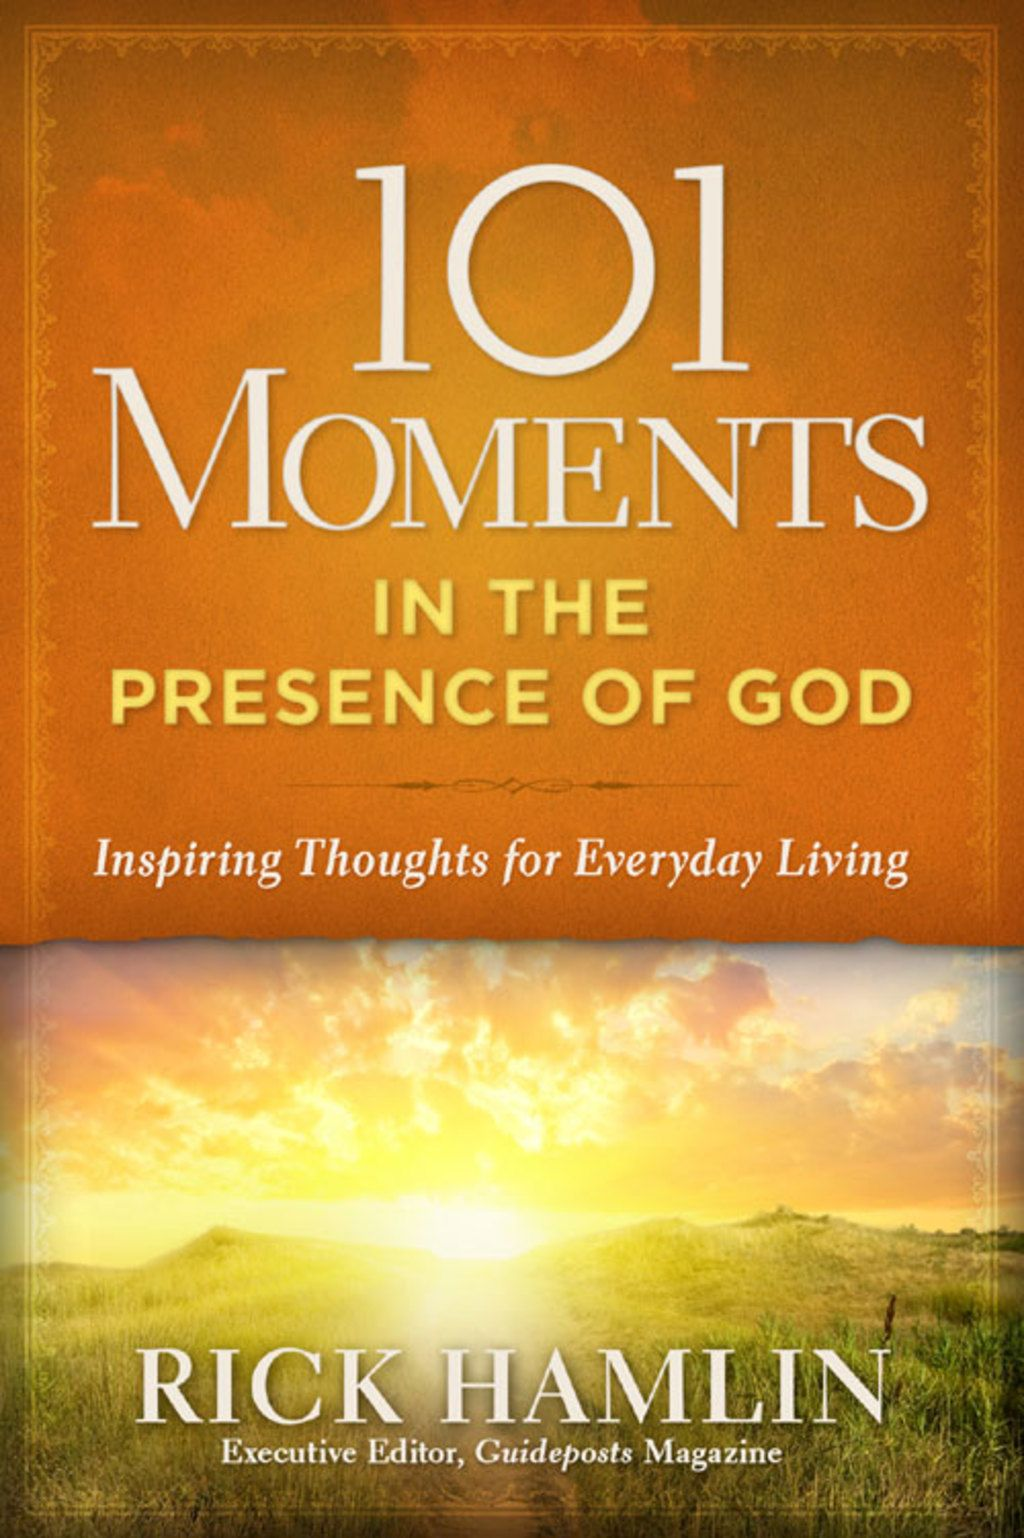 101 Moments in the Presence of God (eBook)